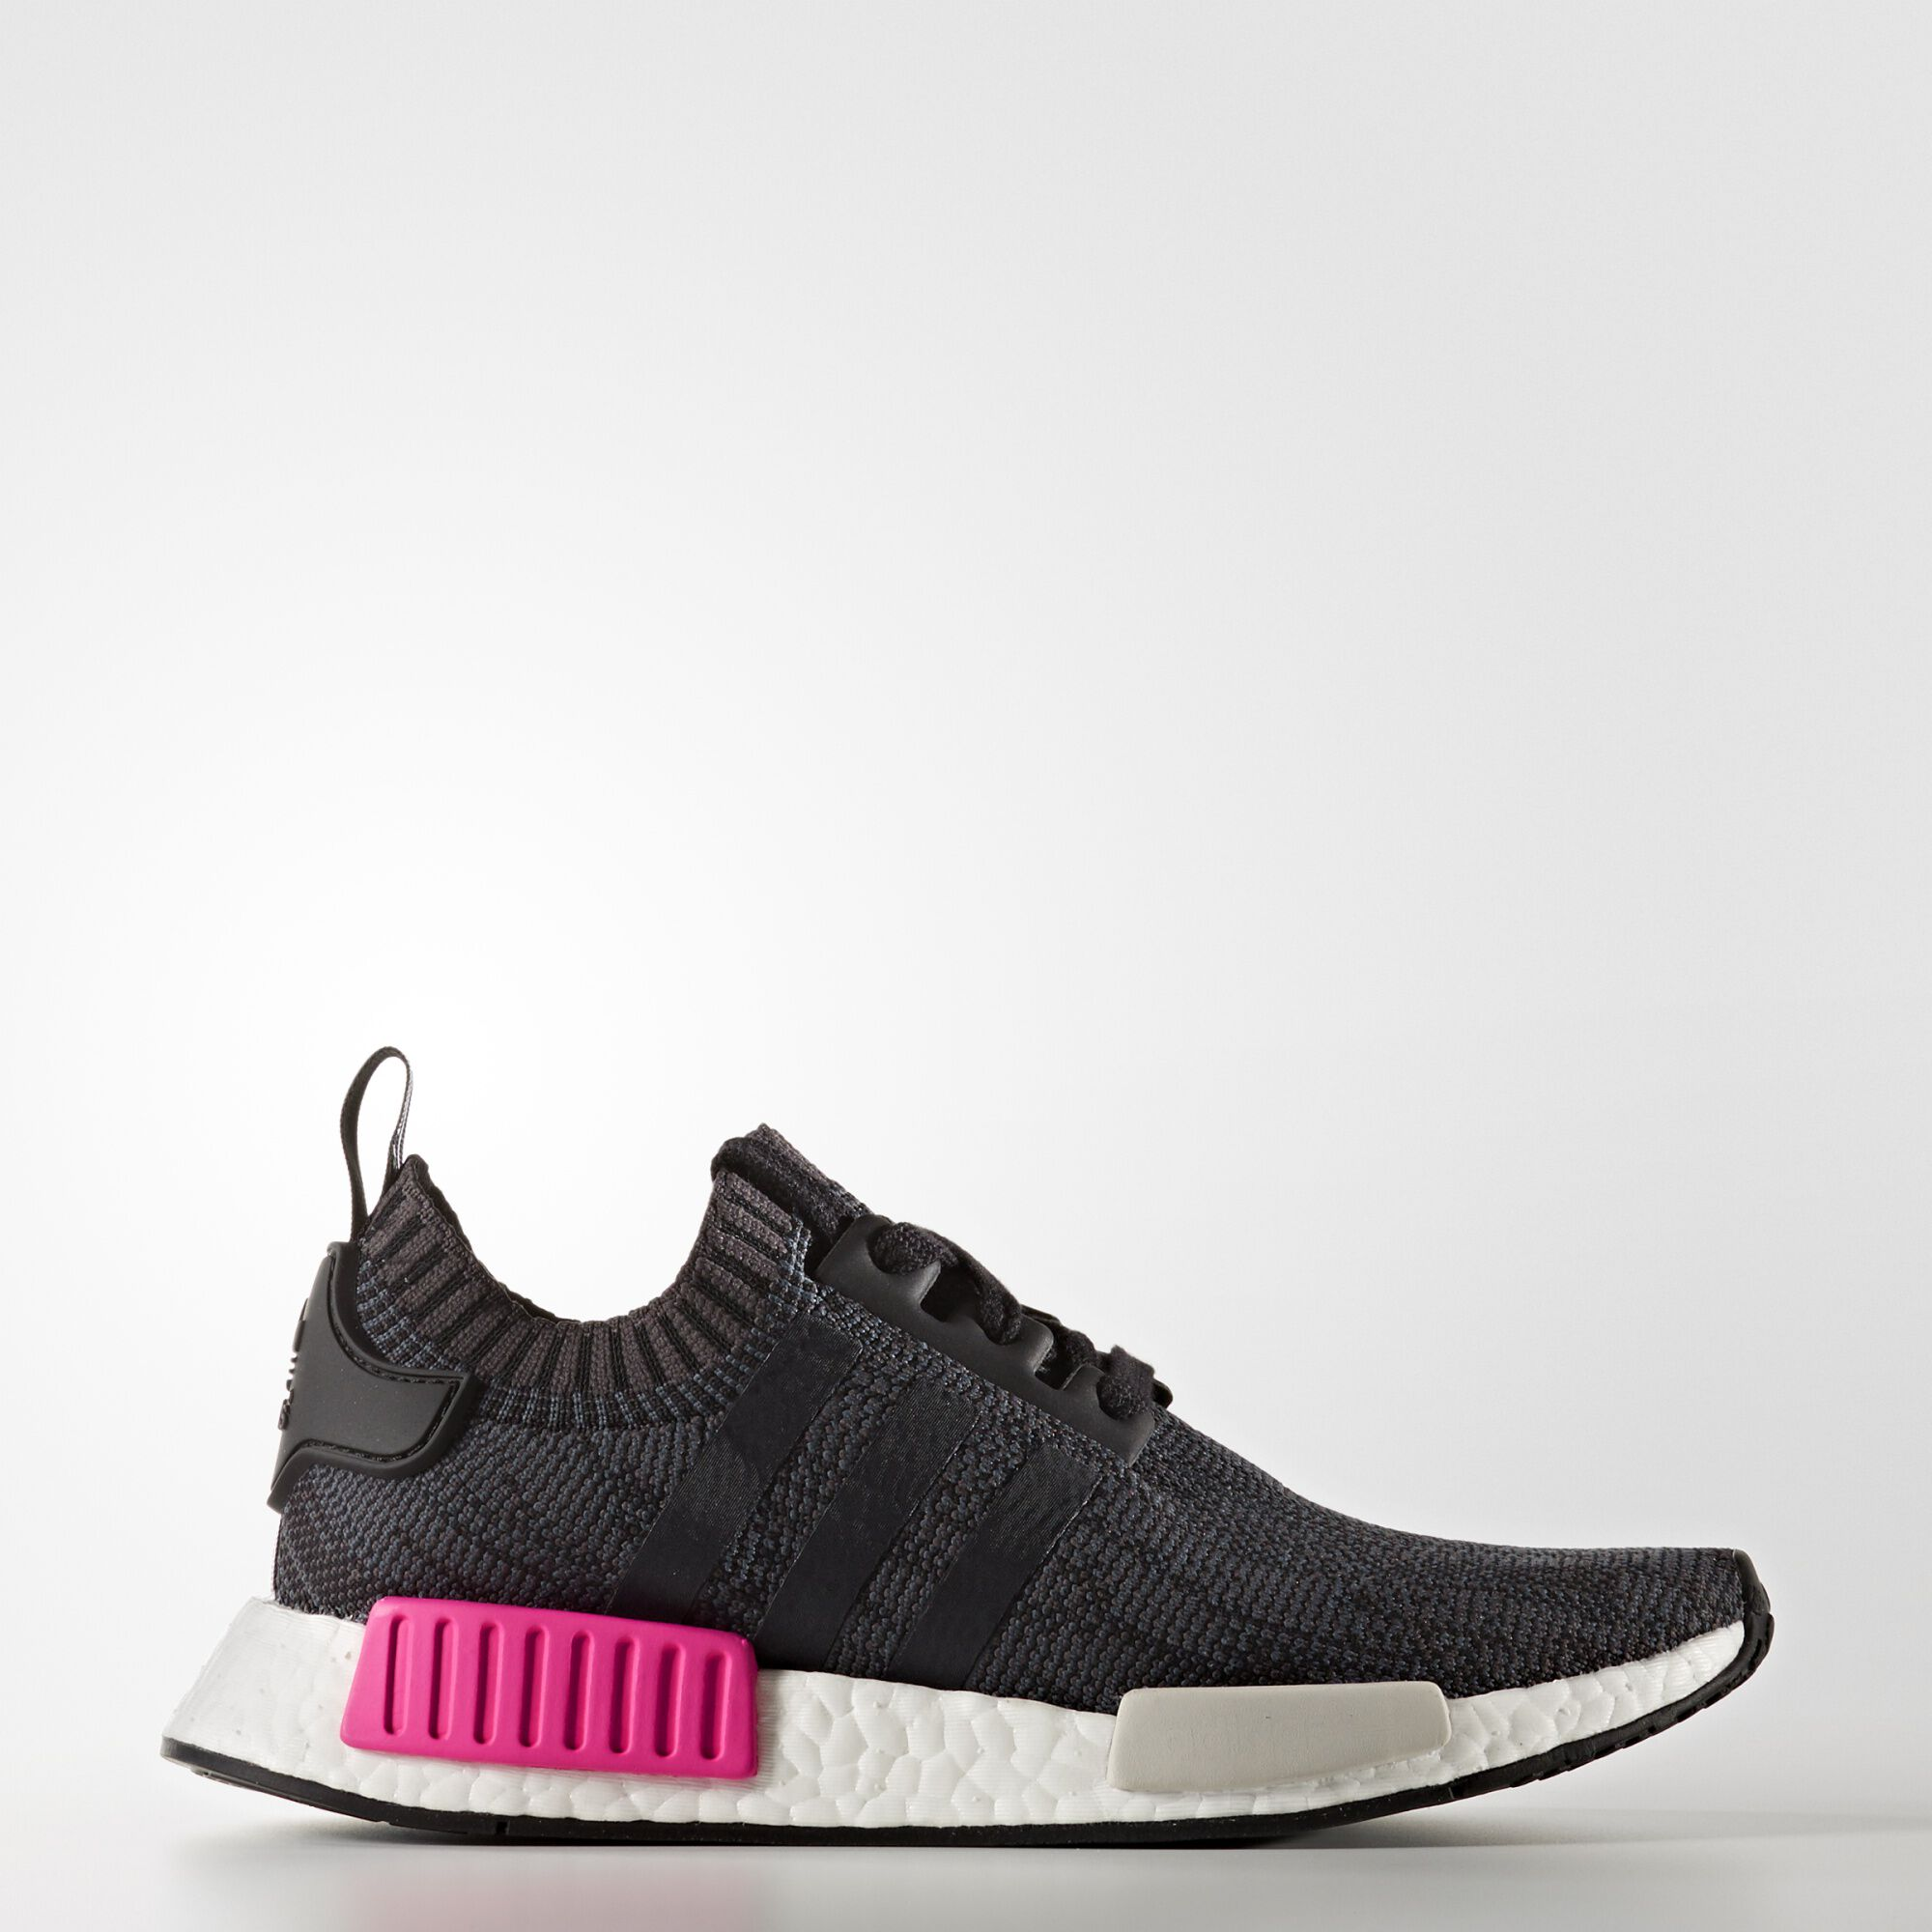 buy gt adidas all black womens shoes